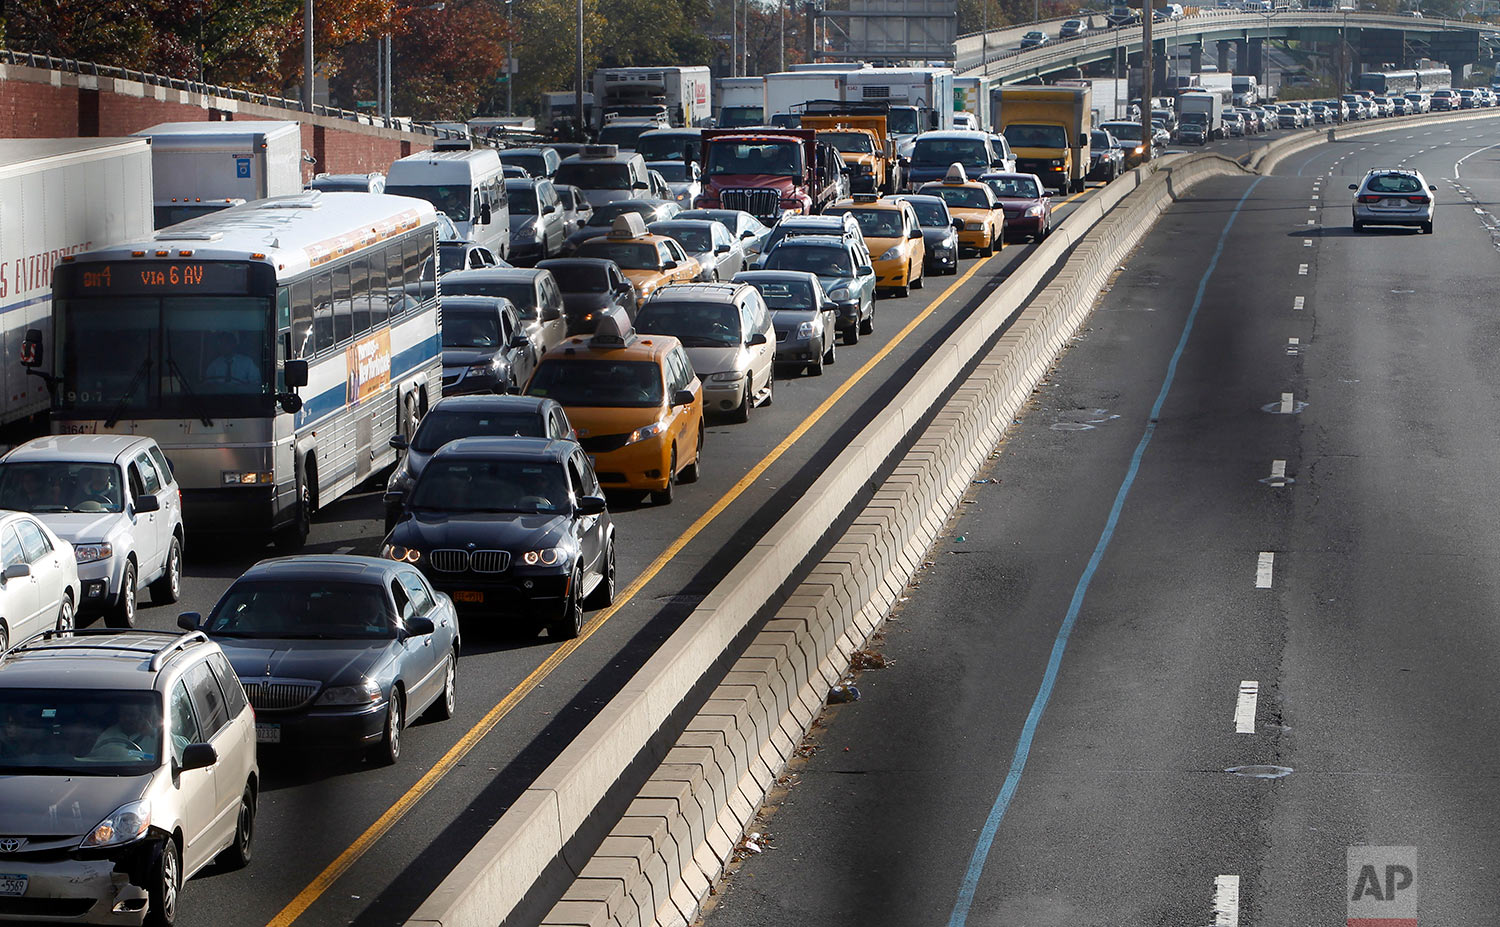 In a photo made through a chain-link fence, traffic is gridlocked on the Long Island Expressway into Manhattan near the turn off for the Queensboro Bridge, Thursday, Nov. 1, 2012, in the Queens borough of New York. New York's subway system rumbled partially back to life Thursday, though the morning commute was plagued by long delays and massive gridlock on the main highways and bridges leading into the city. (AP Photo/Jason DeCrow)